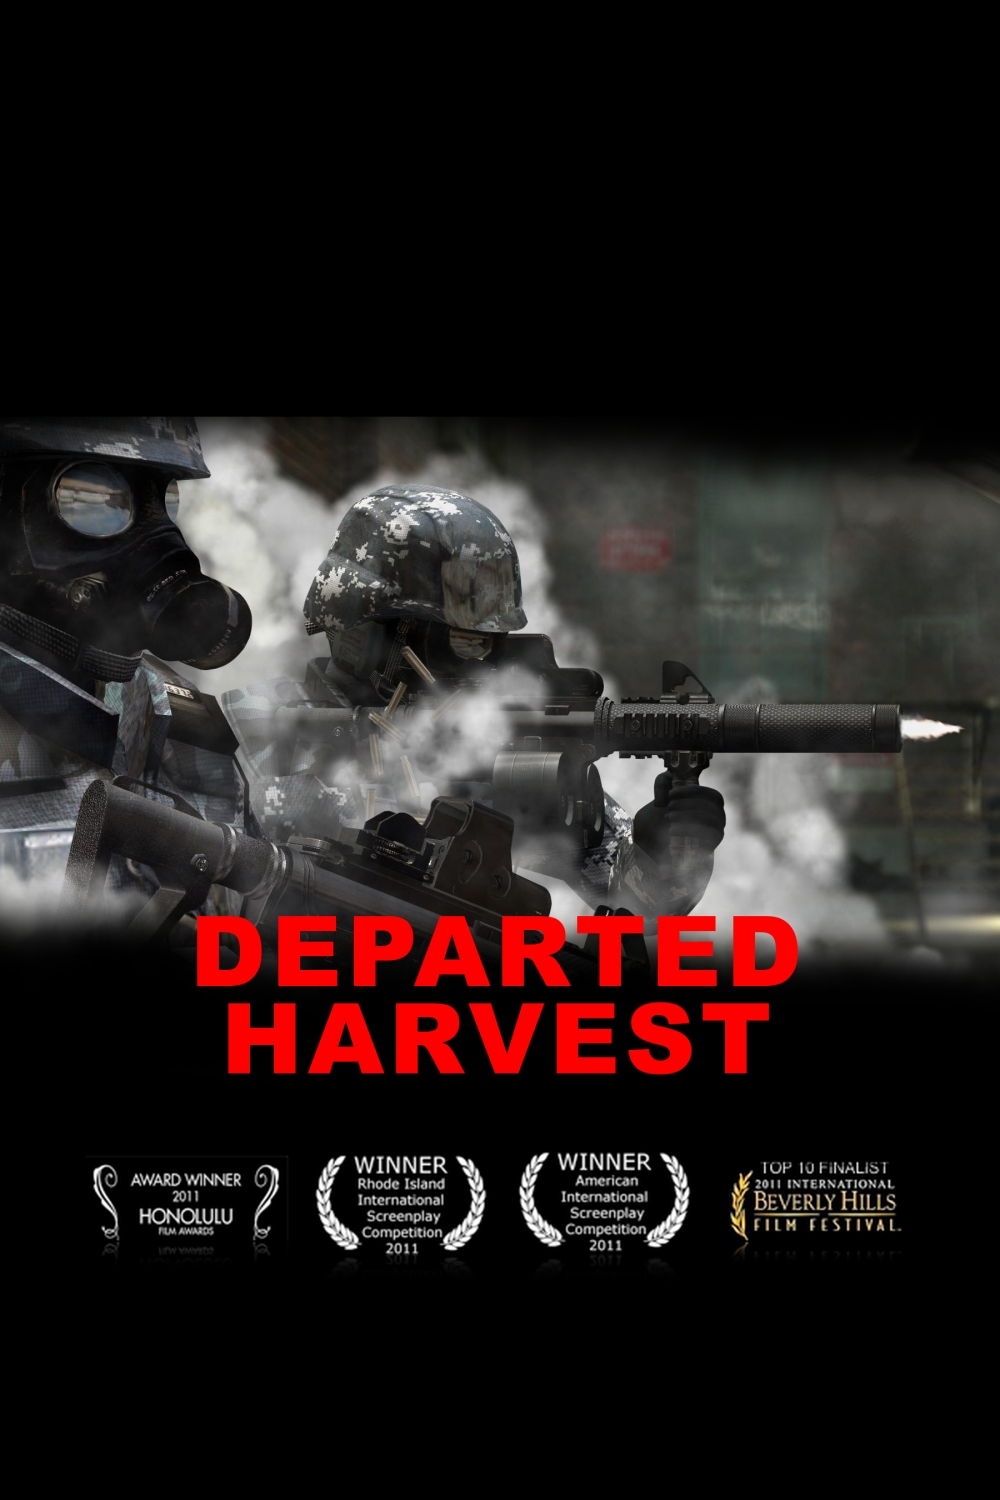 DEPARTED HARVEST POSTER10